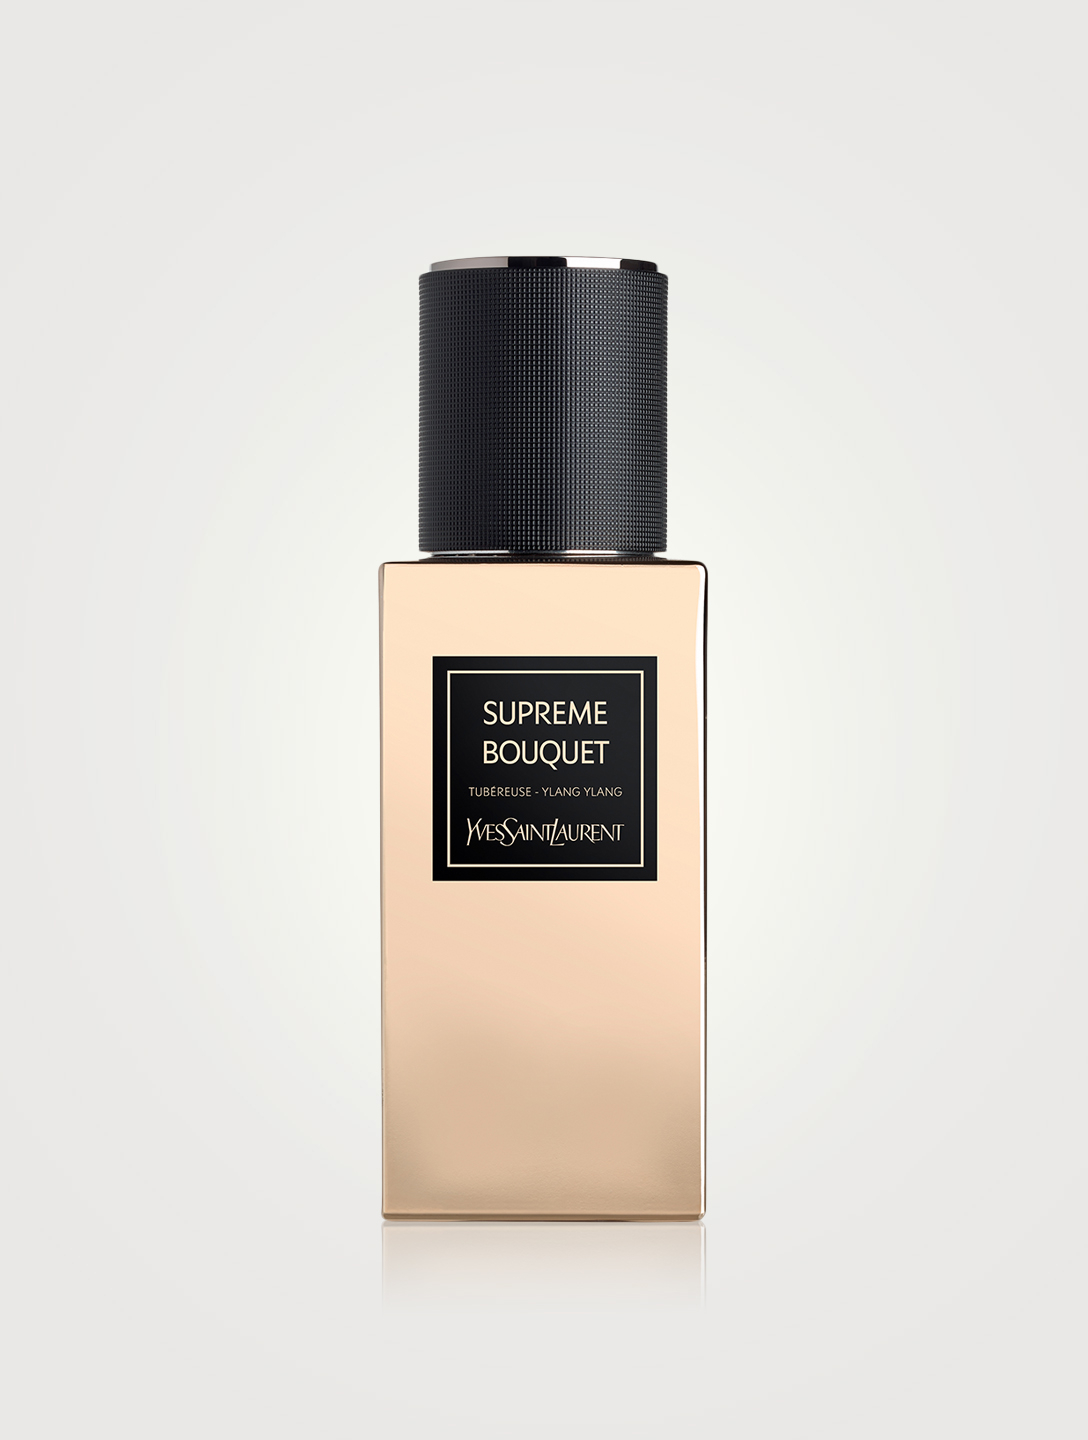 YVES SAINT LAURENT Supreme Bouquet - Le Vestiaire Des Parfums Collection Orientale Designers